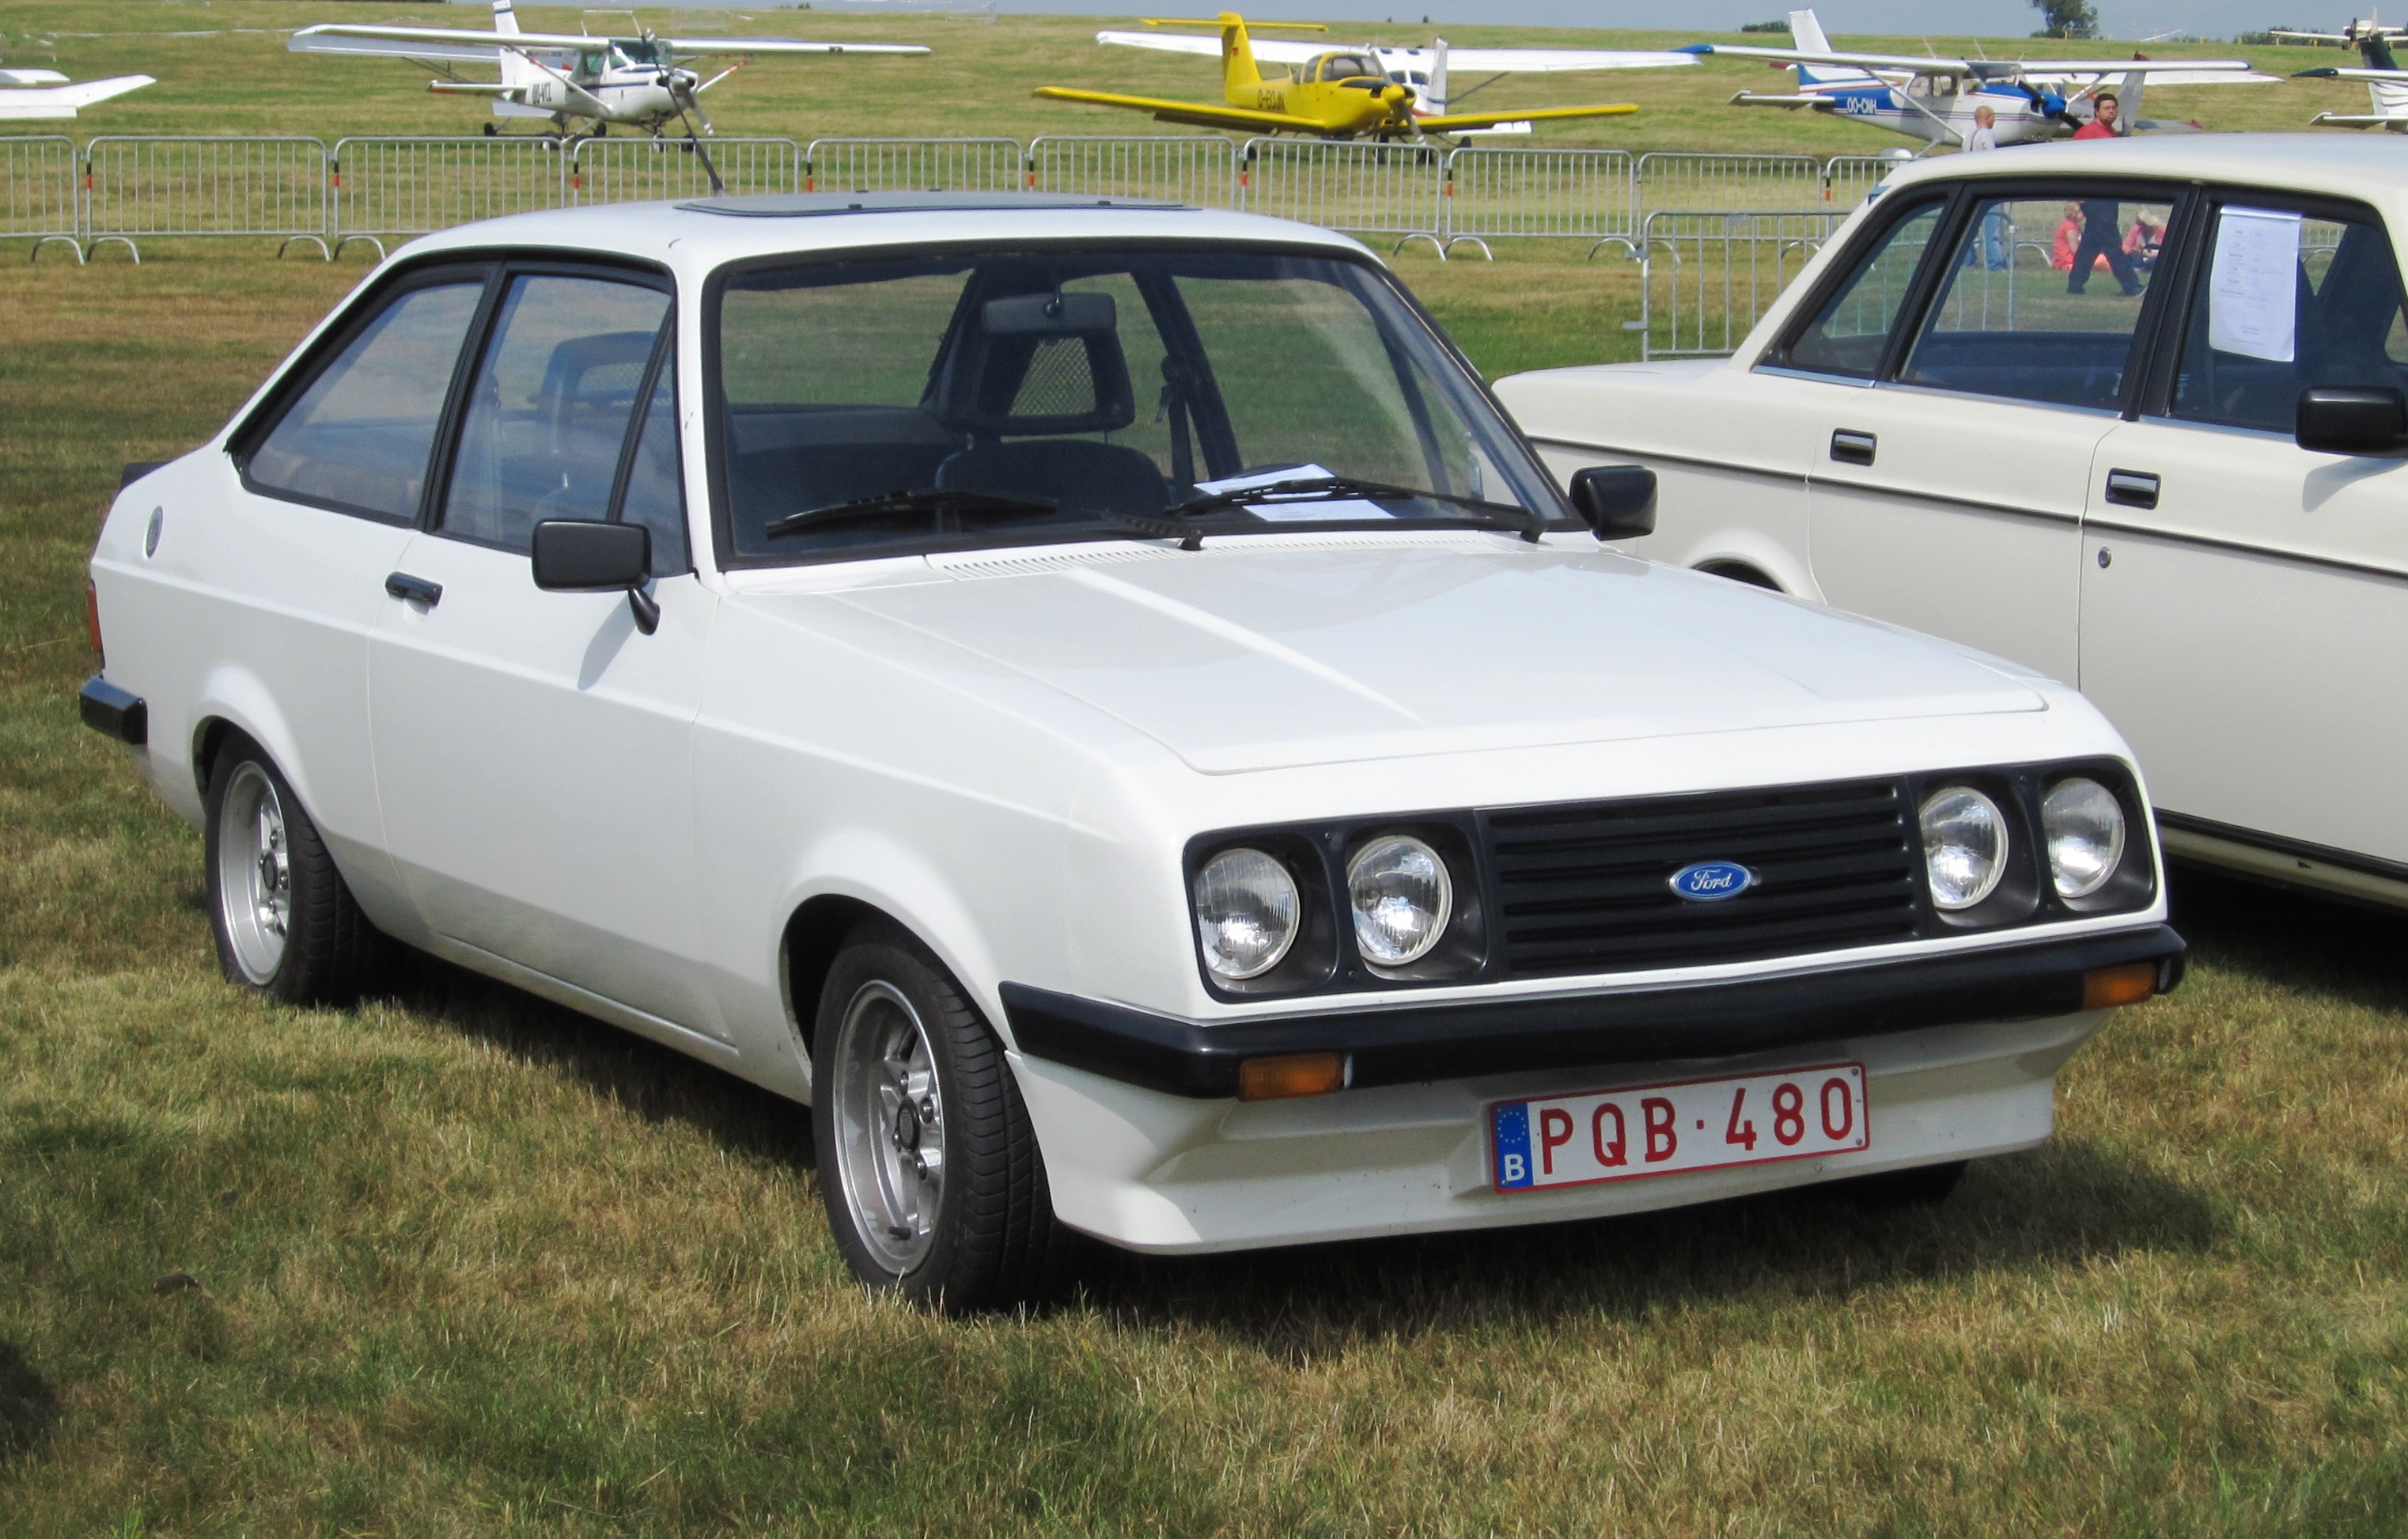 Stock Photo Christina Cox likewise ment Tailler Barbe Coupe Chou together with File Ford Escort RS2000  ca 1976  at Schaffen Diest Fly Drive 2013 besides Warranty Card besides 63332869. on ca 2000